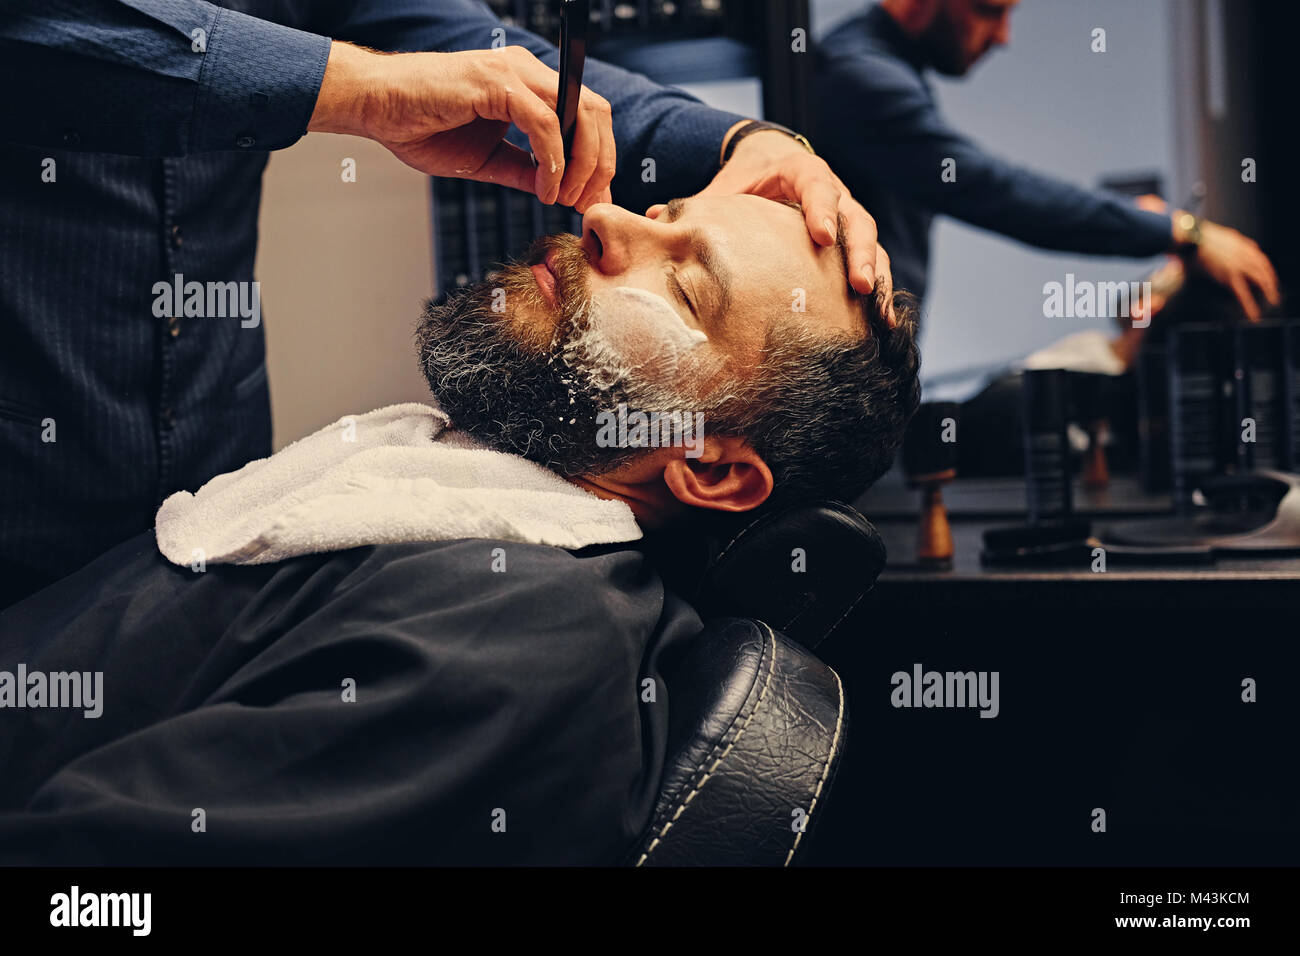 Barber shaving bearded male with a sharp razor. - Stock Image